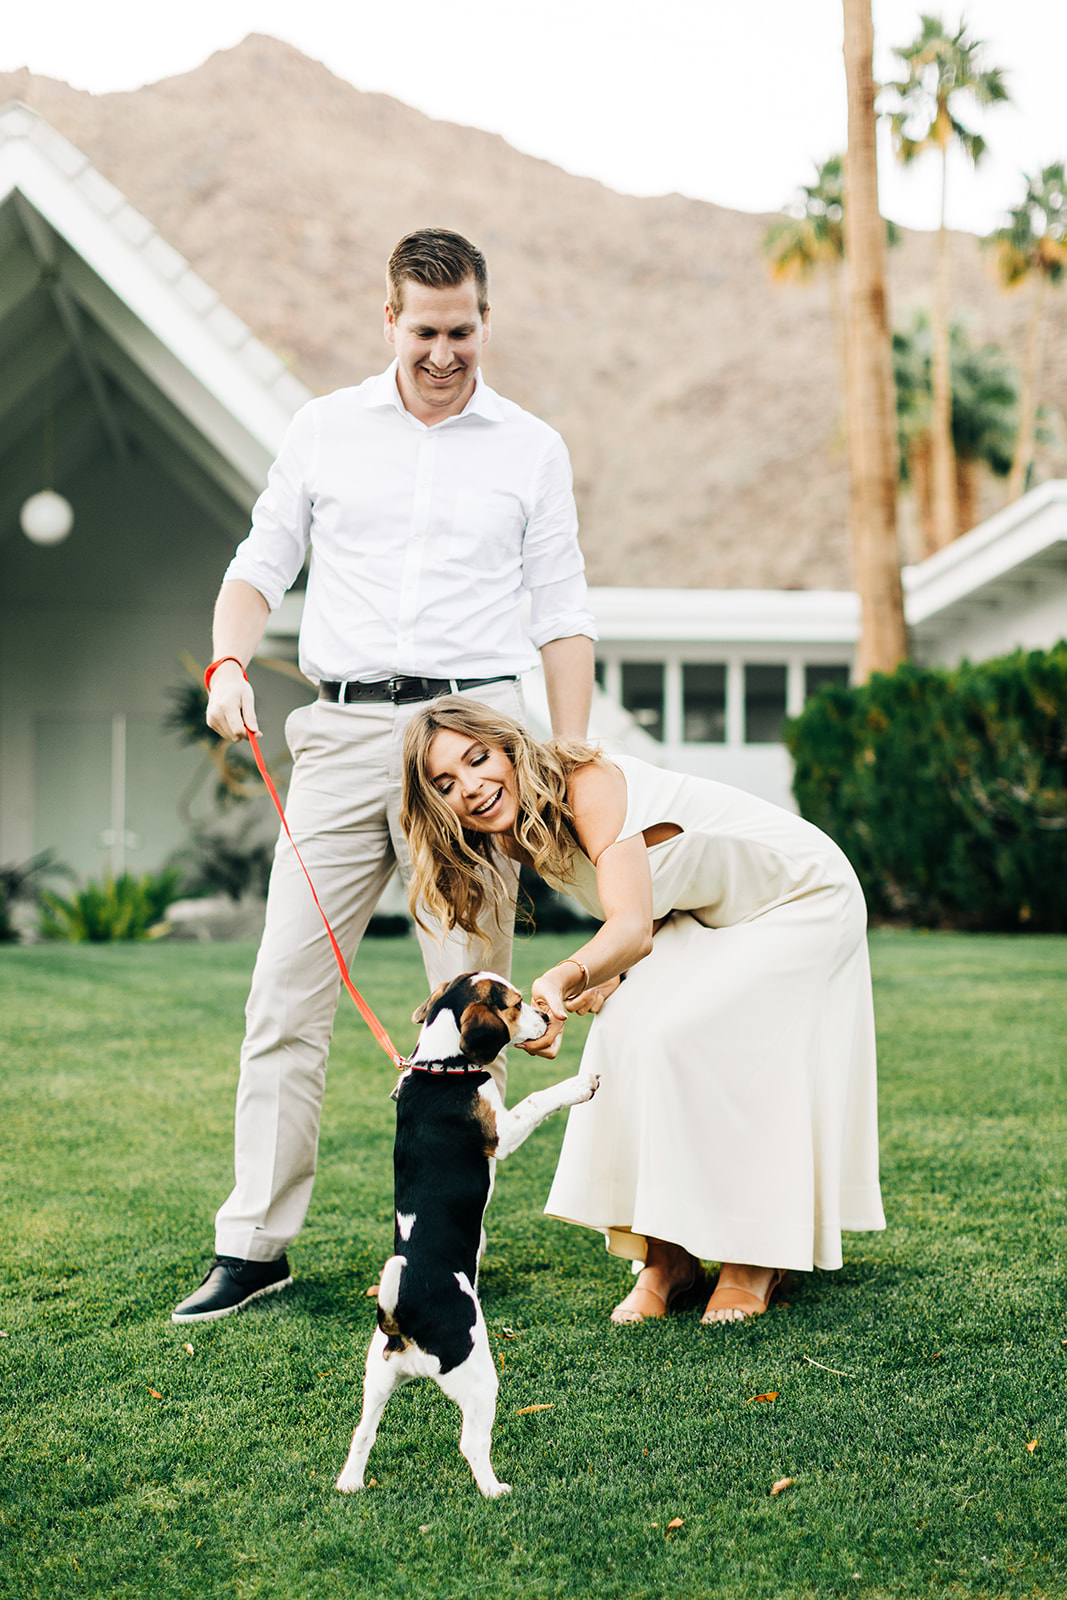 Paulina-Drew_Palm-Springs-Engagement-Photos_Clarisse-Rae_Southern-California-Wedding-Photographer-5